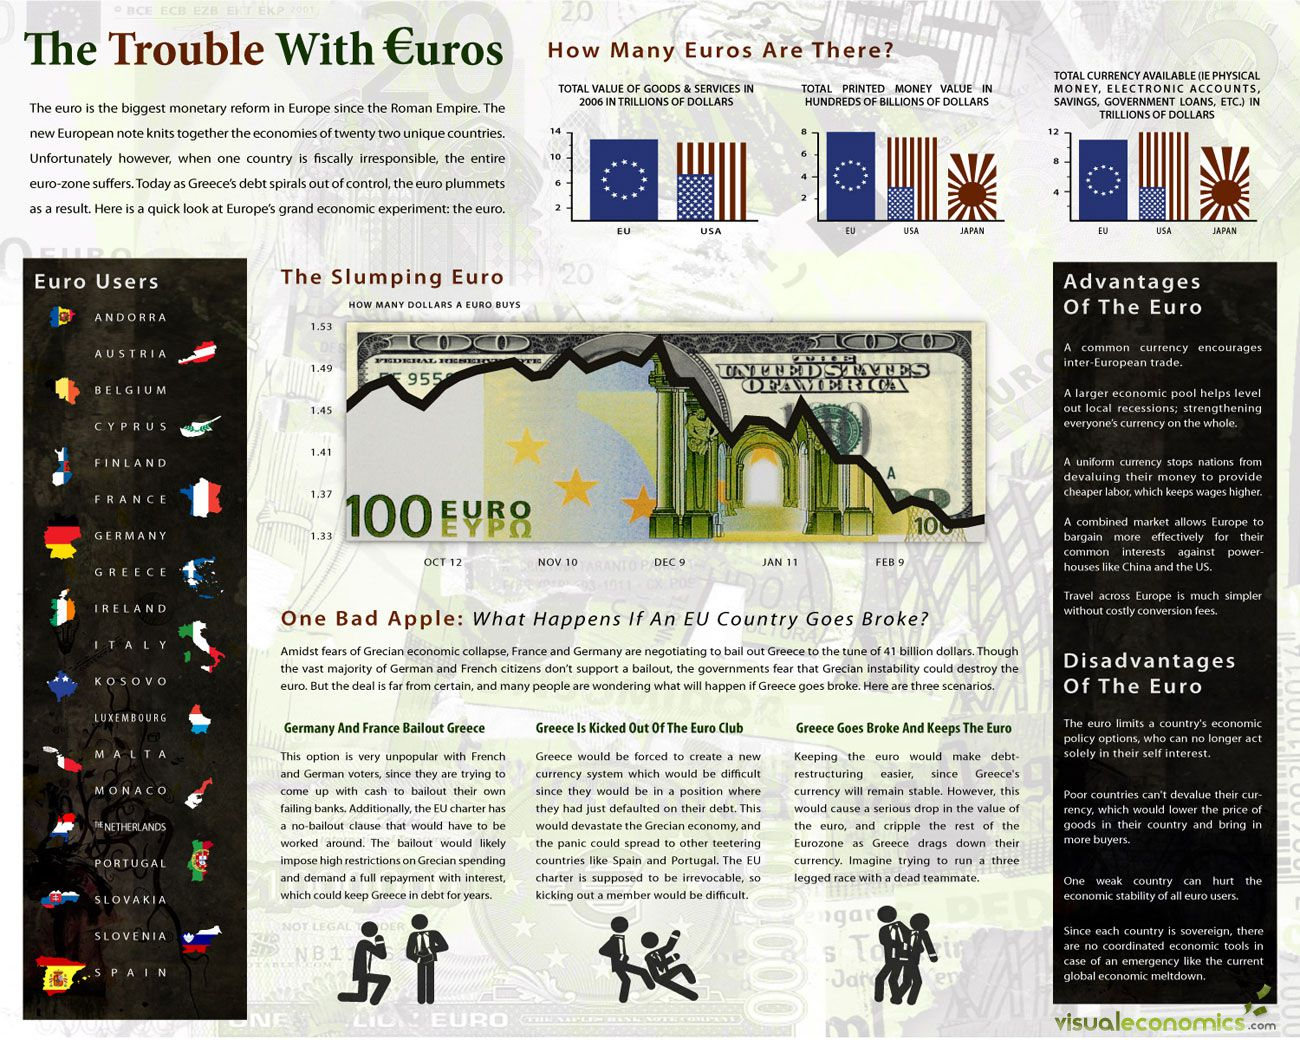 The troubled state of the Euro